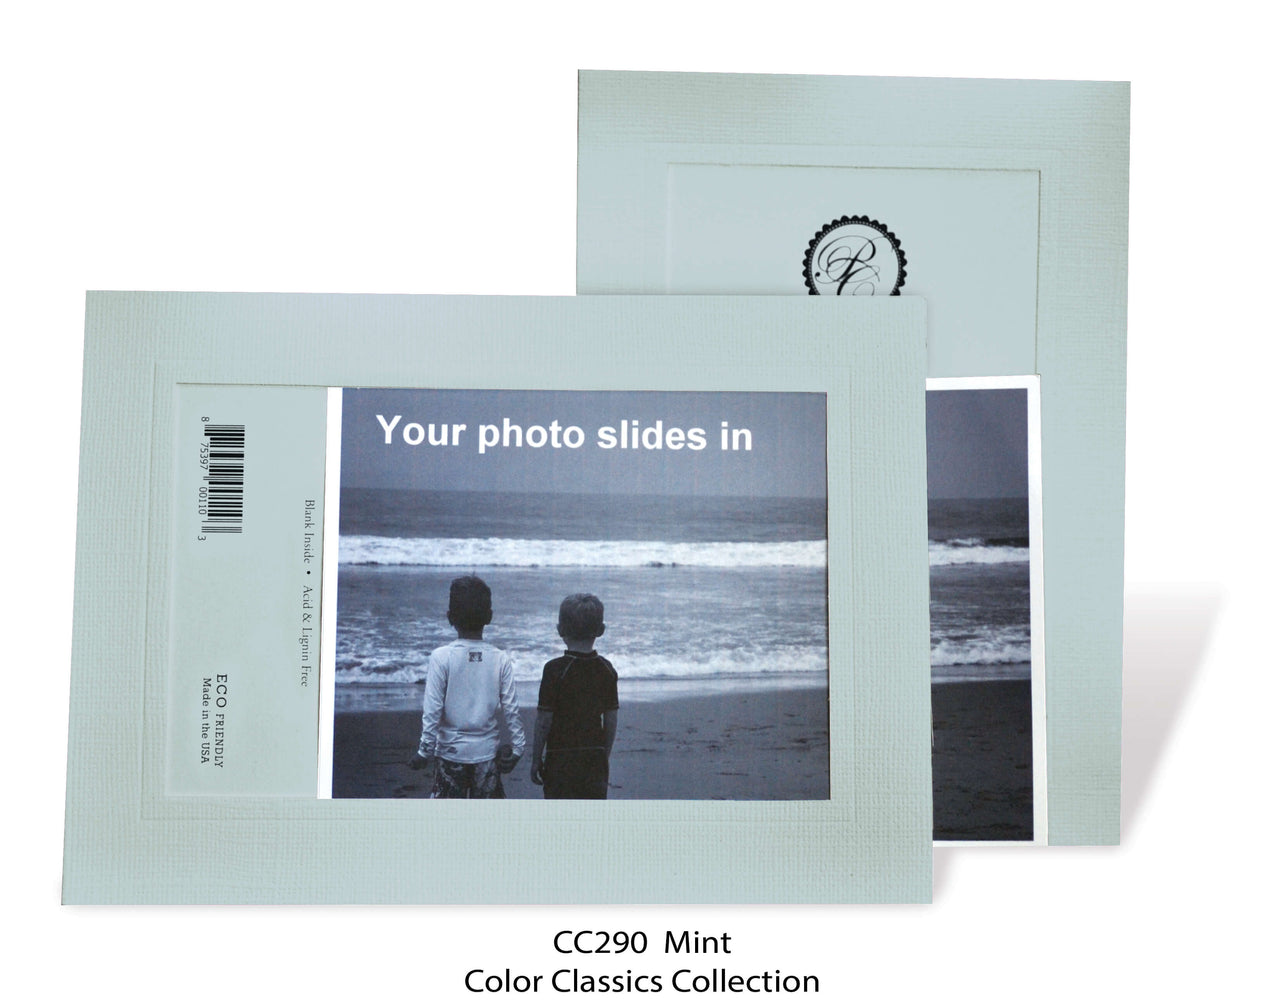 Mint Photo Insert Note Cards - Color Classics collection (color #CC290)